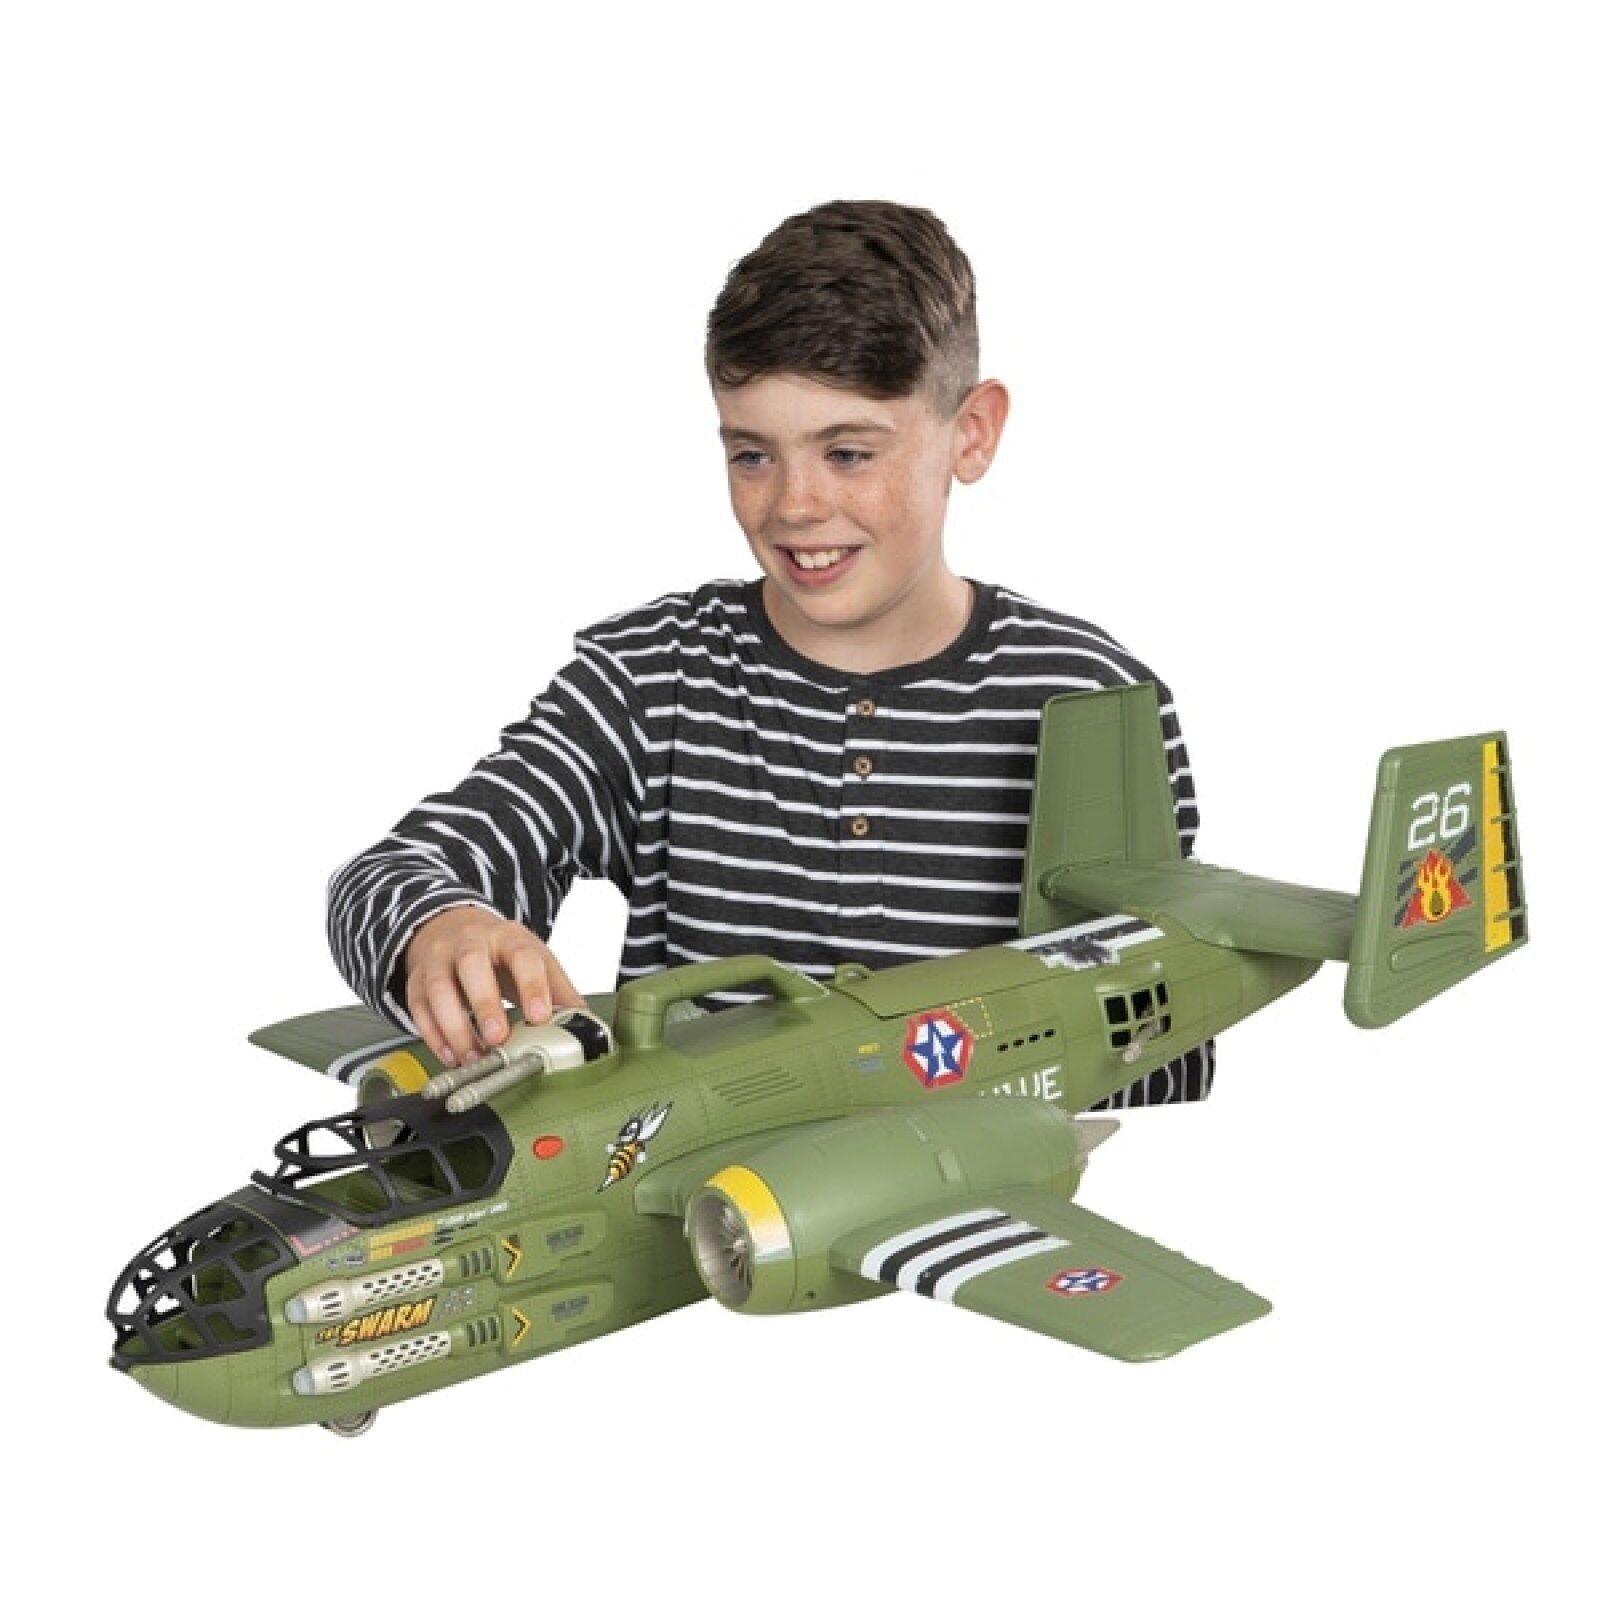 The Corps Elite Beast Bomber Super Command Transport Toy Aeroplane Lights Sounds